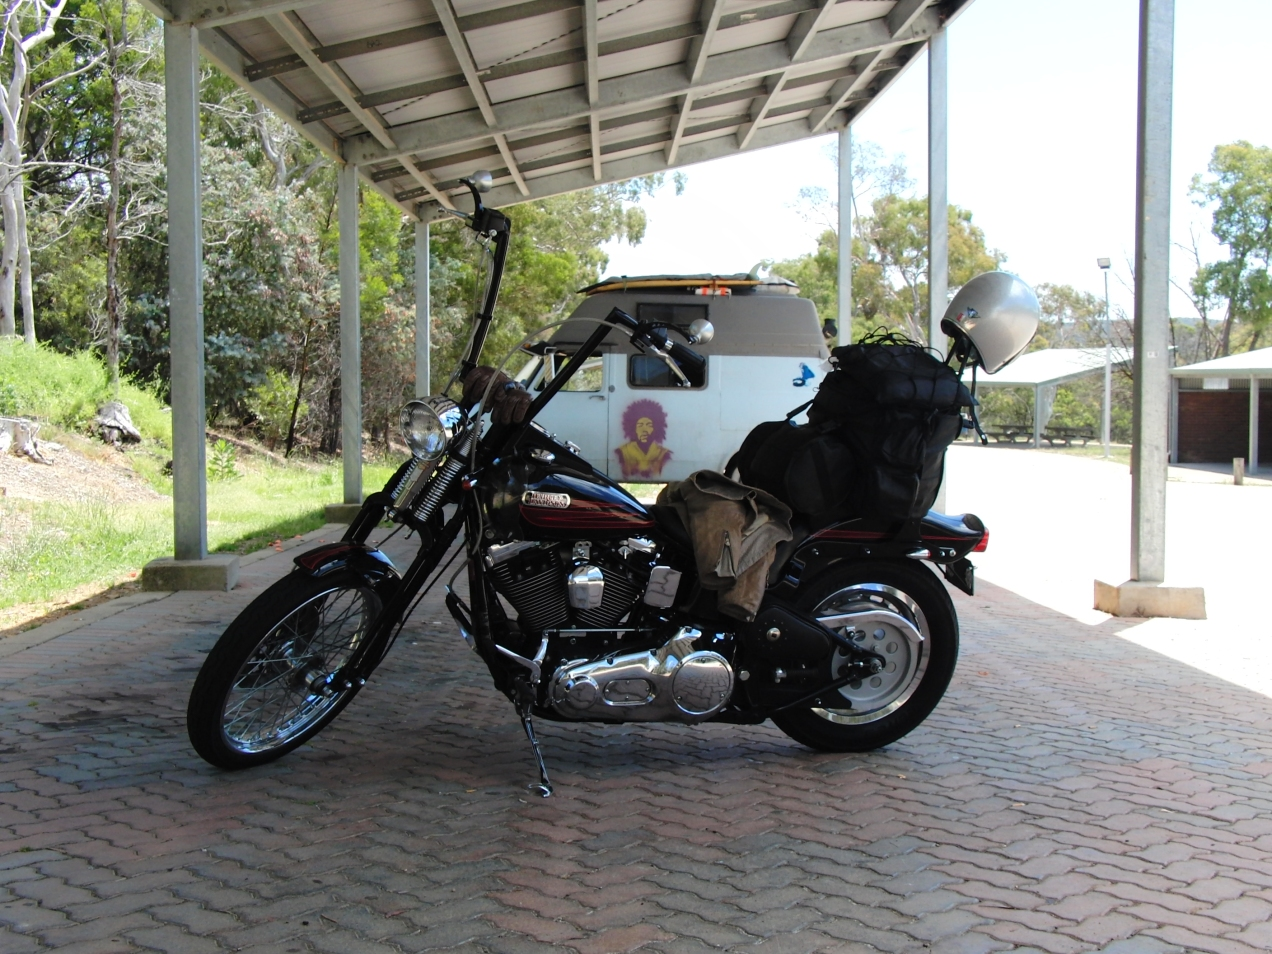 harley-davidson-softail-springer-1995-bad-boy-FXSTSB-evolution-1340-thunderheader-carlini-evil-apehangers-cycle-vision-tall-sissybar-joker-machine-mirrors-psalmistice_CIMG2066